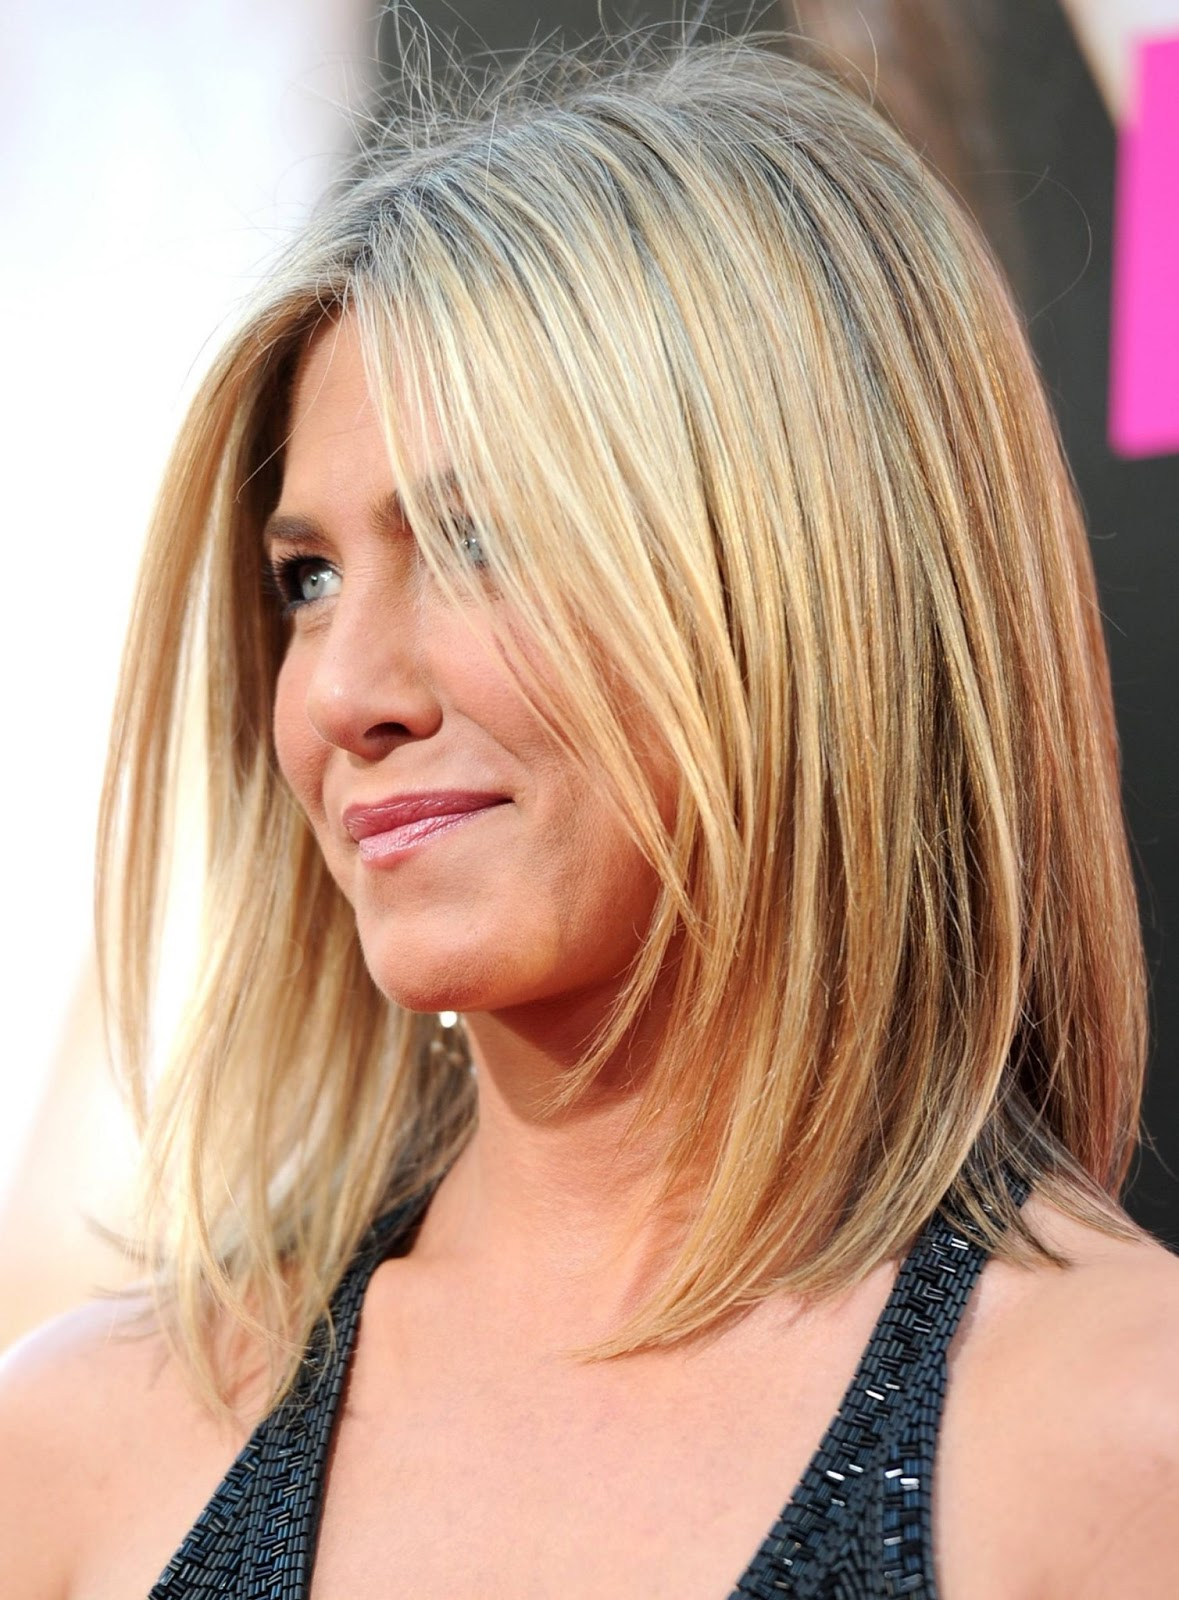 Hairstyles For Thin Hair  Hairstyles That Add Volume - How to style fine thin hair